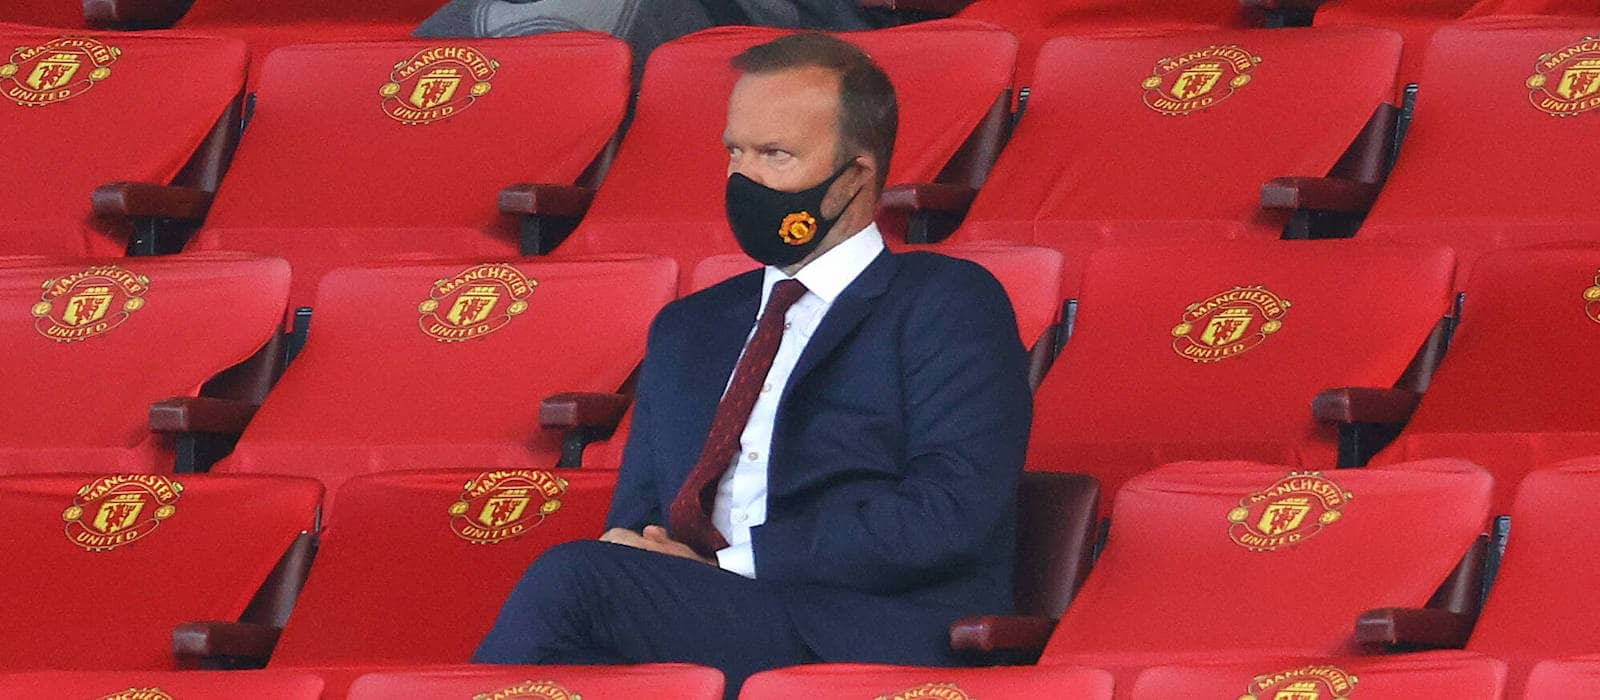 Ed Woodward's PR machine working overtime to deflect blame